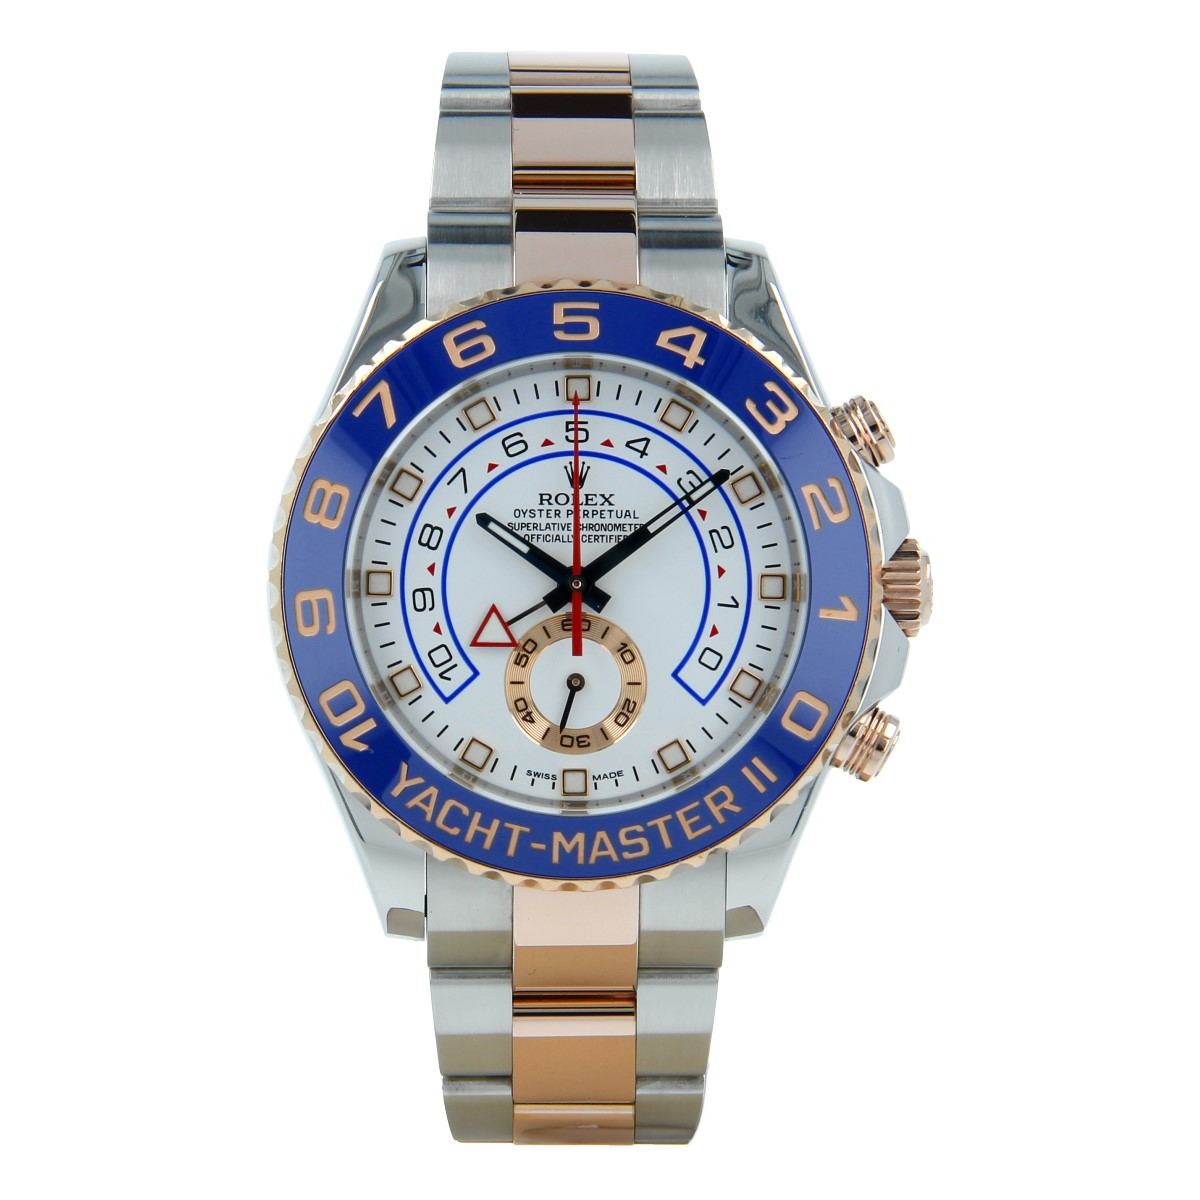 Rolex Yacht-Master II 116681 Steel and Everose Gold | Buy second-hand Rolex watch